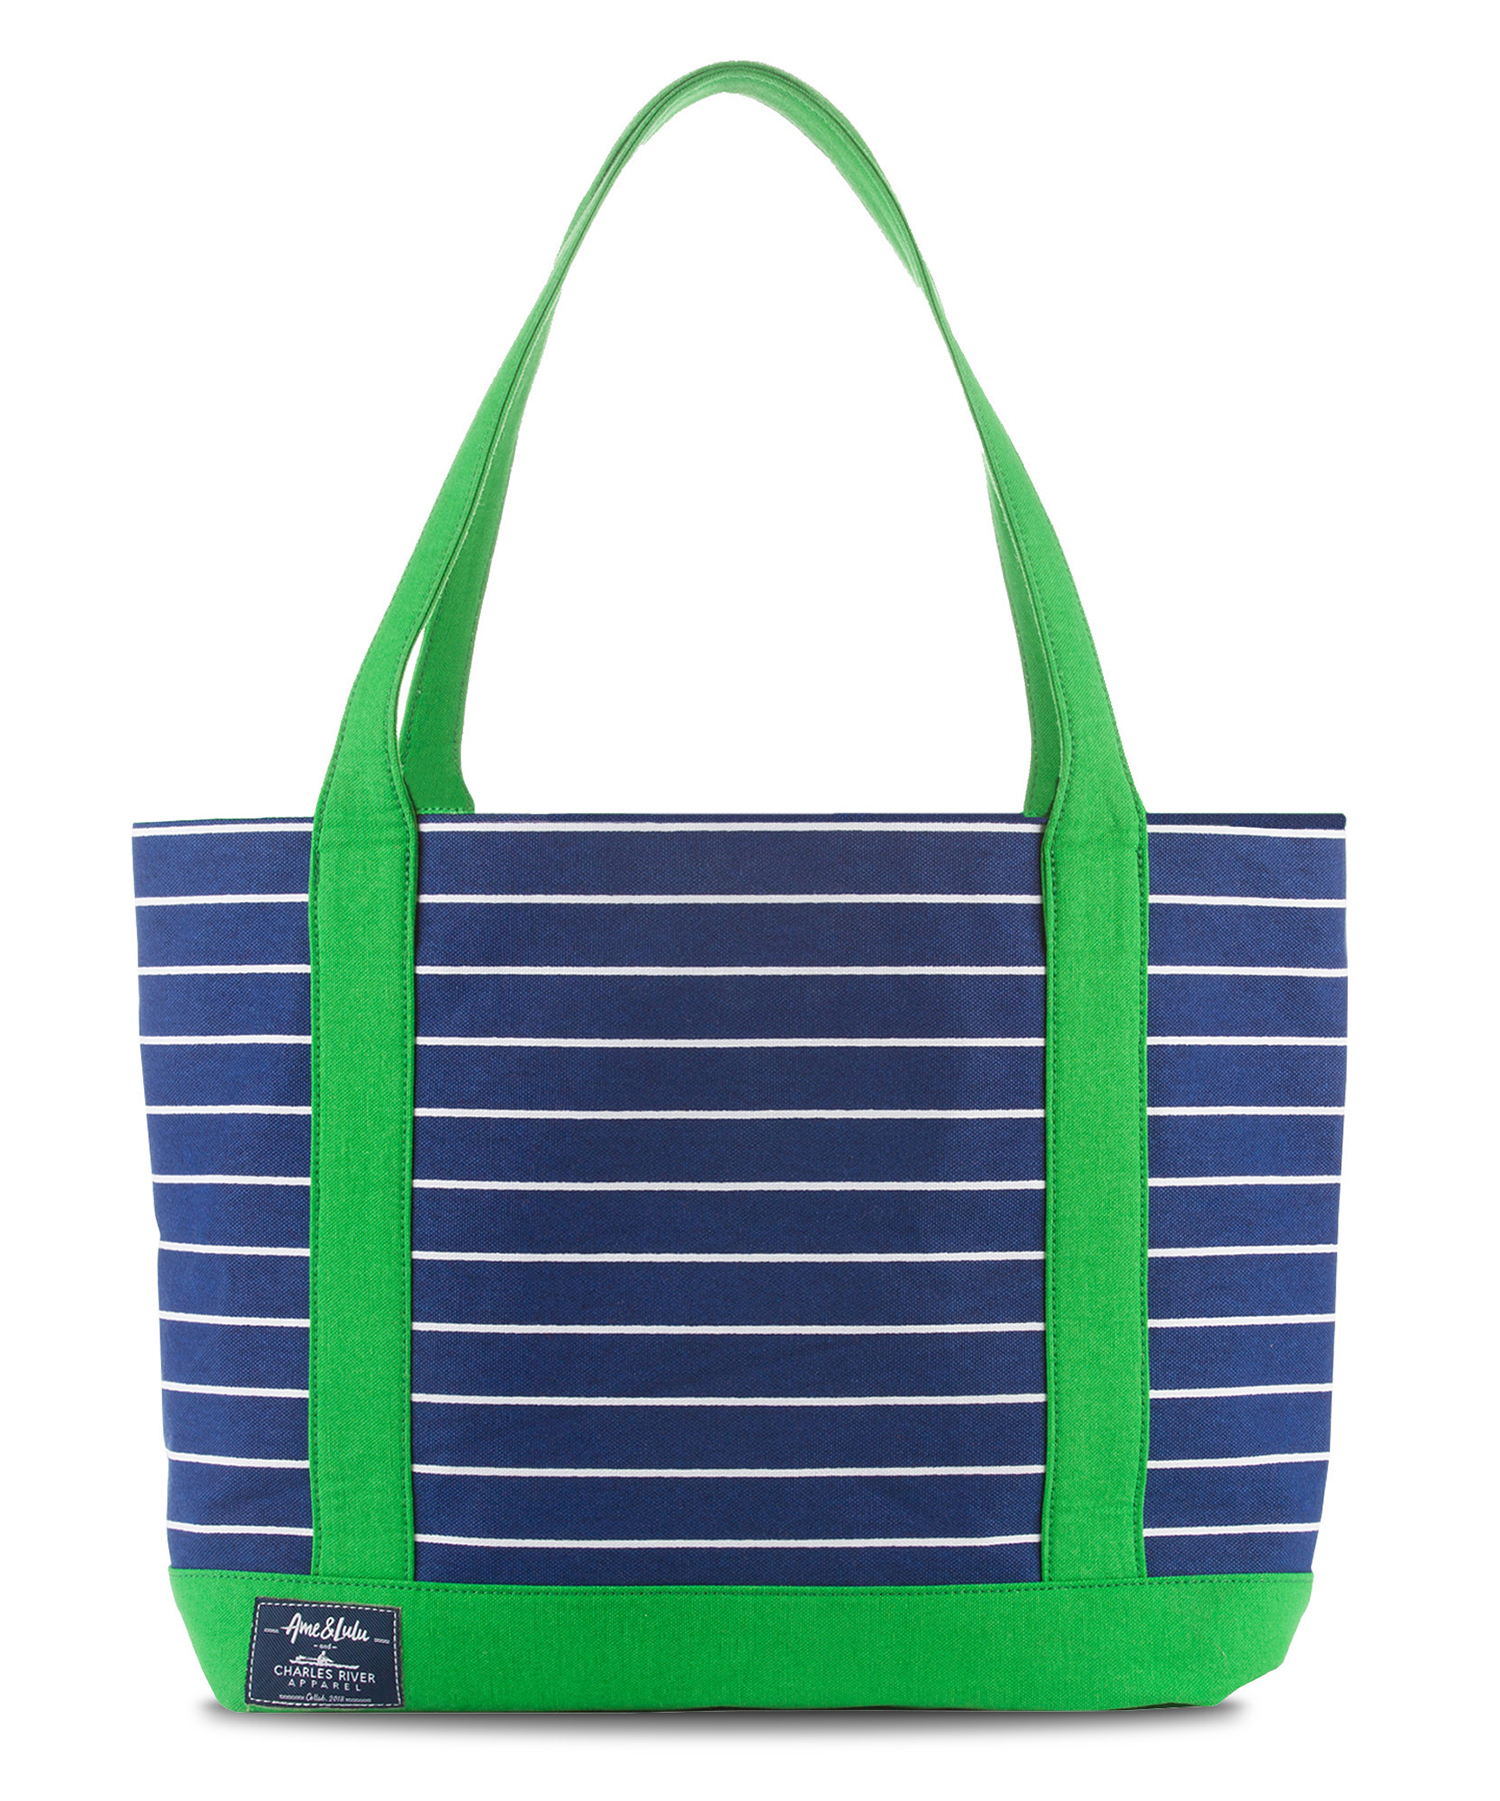 click to view Kelly Green/Stripe 545